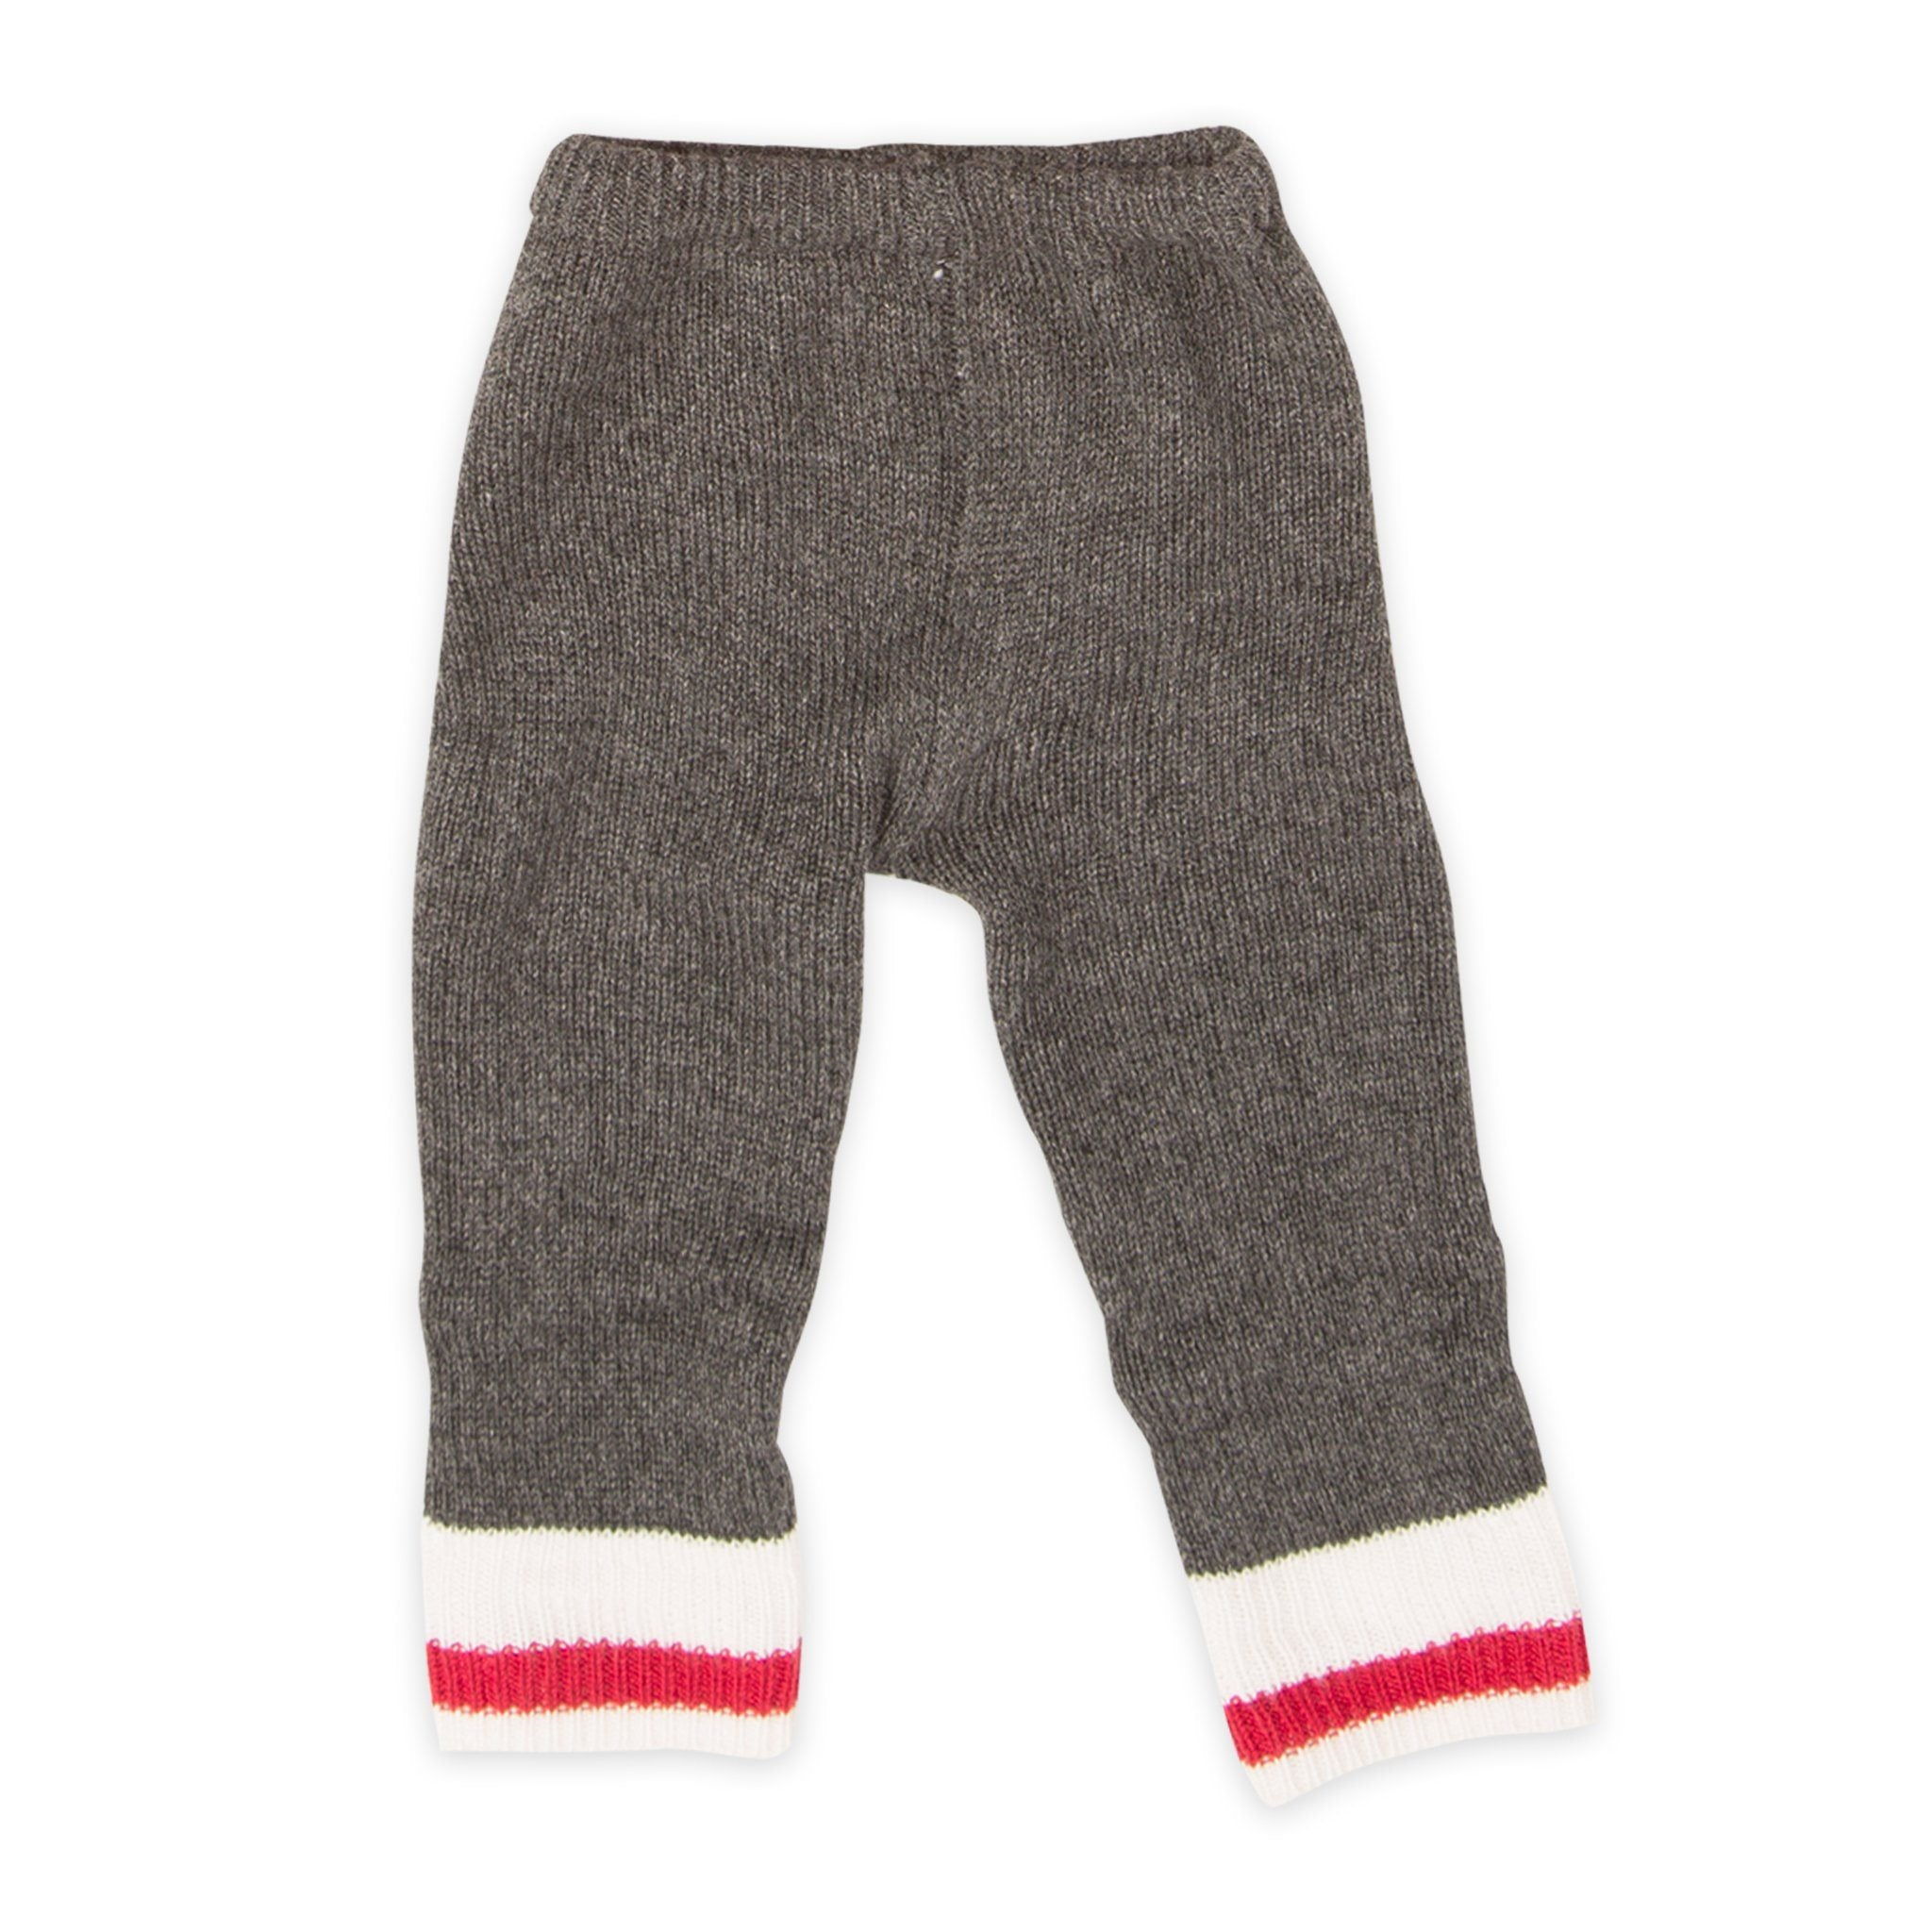 Northern Spirit red knit dark grey leggings with white and red cuff accent fits all 18 inch dolls.